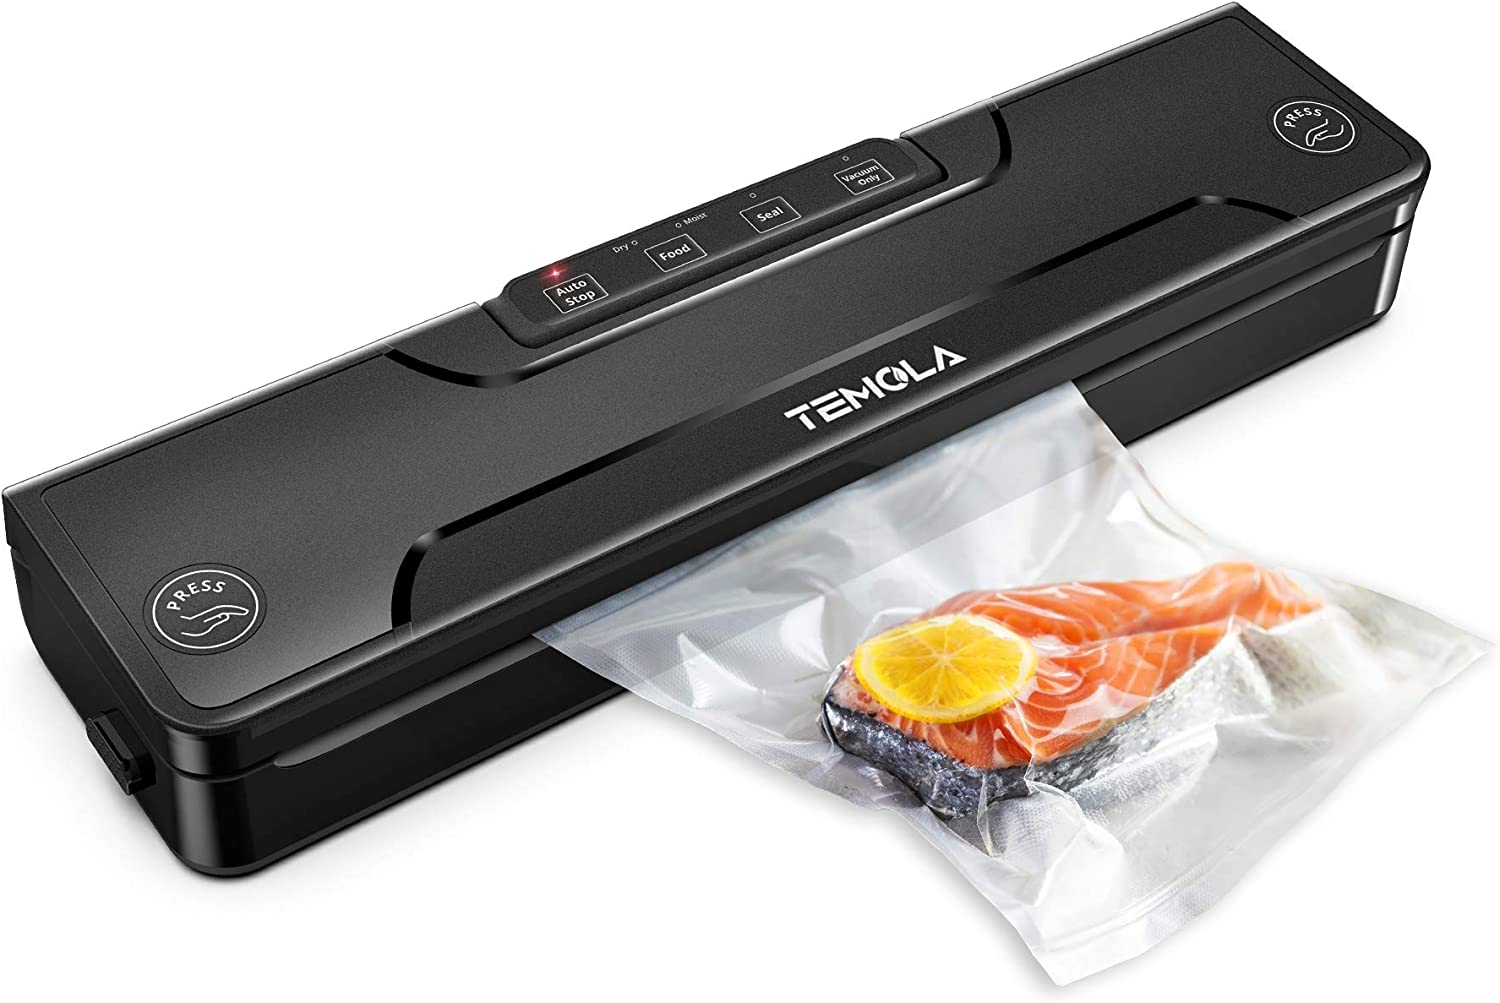 Vacuum Sealer Machine, TEMOLA TS20 Food Sealer Automatic Vacuum Sealing System for Food Preservation with Dry & Moist Food Modes and Starter Kit (Vacuum Sealer Bag X 20 included)